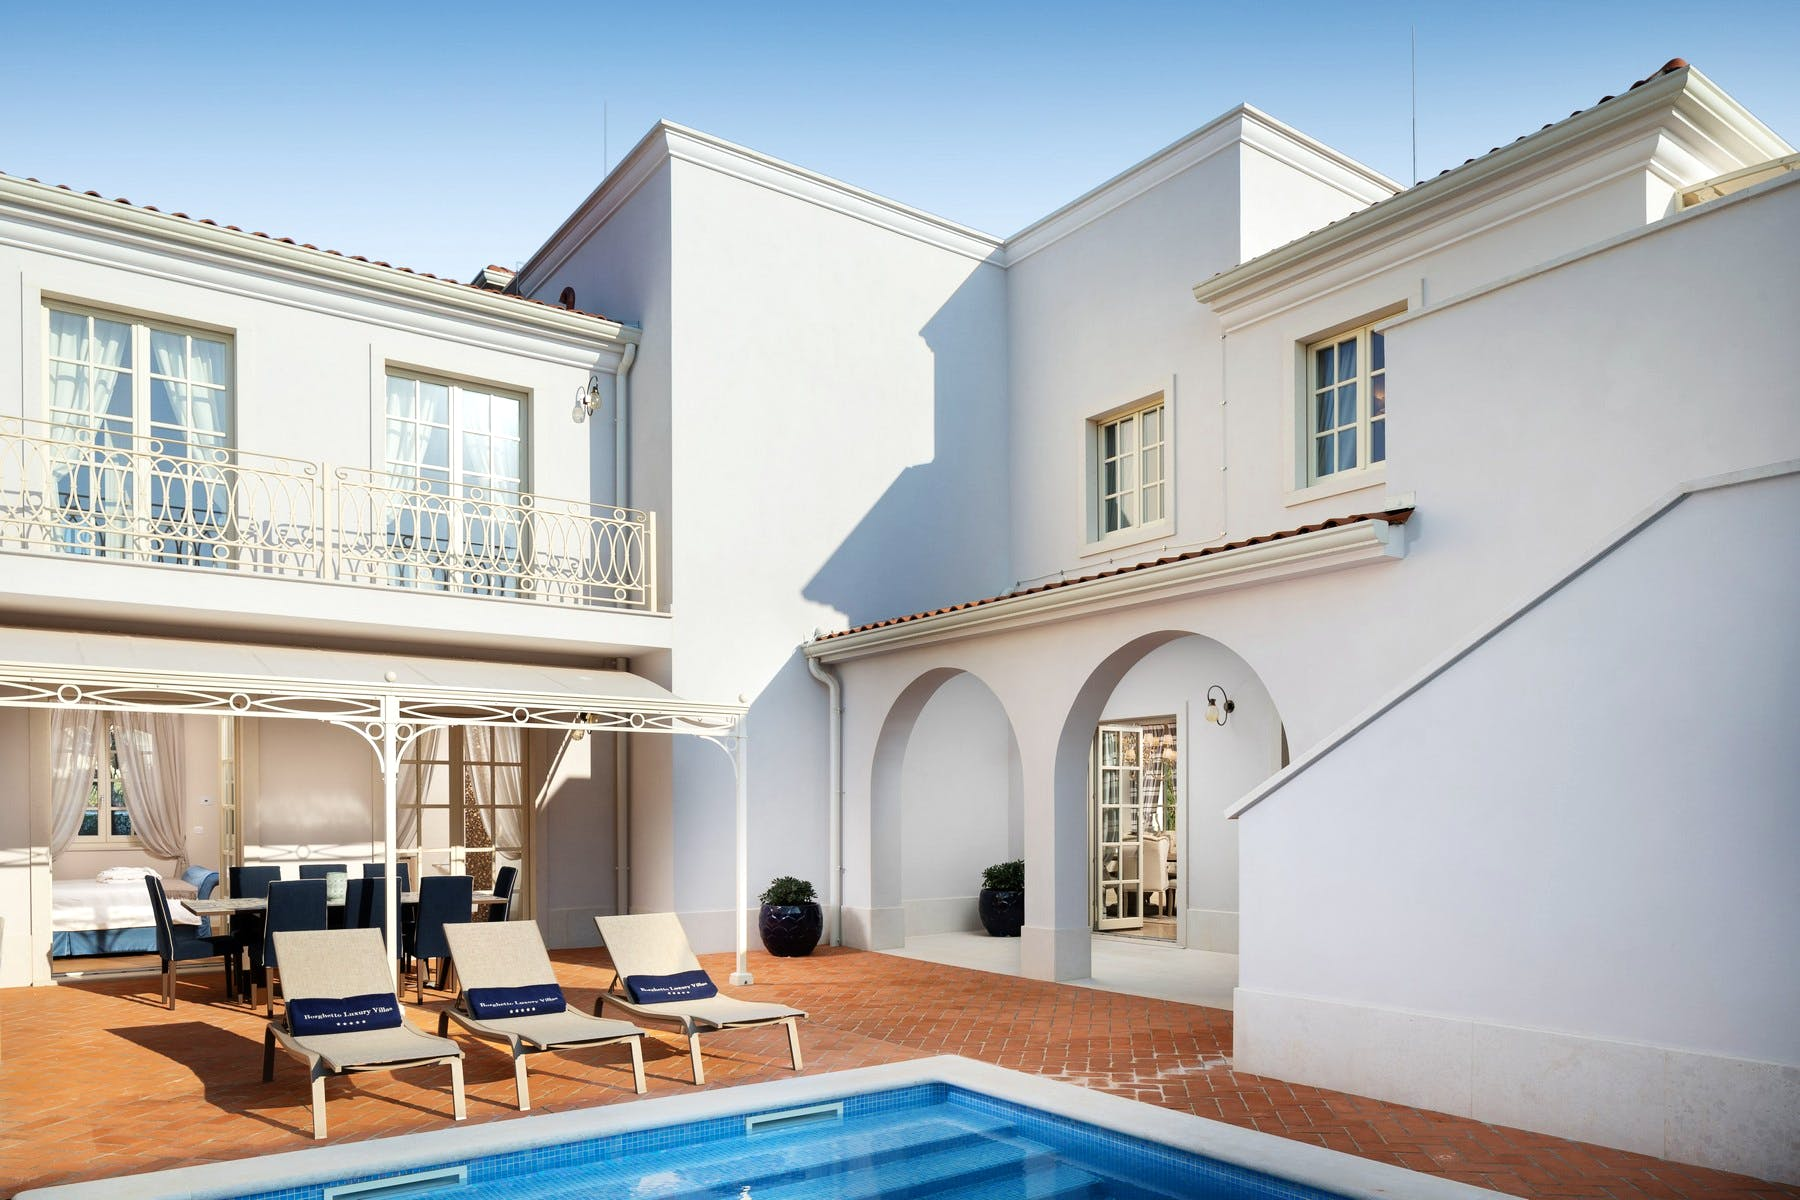 Vacation villa with pool within luxury resort